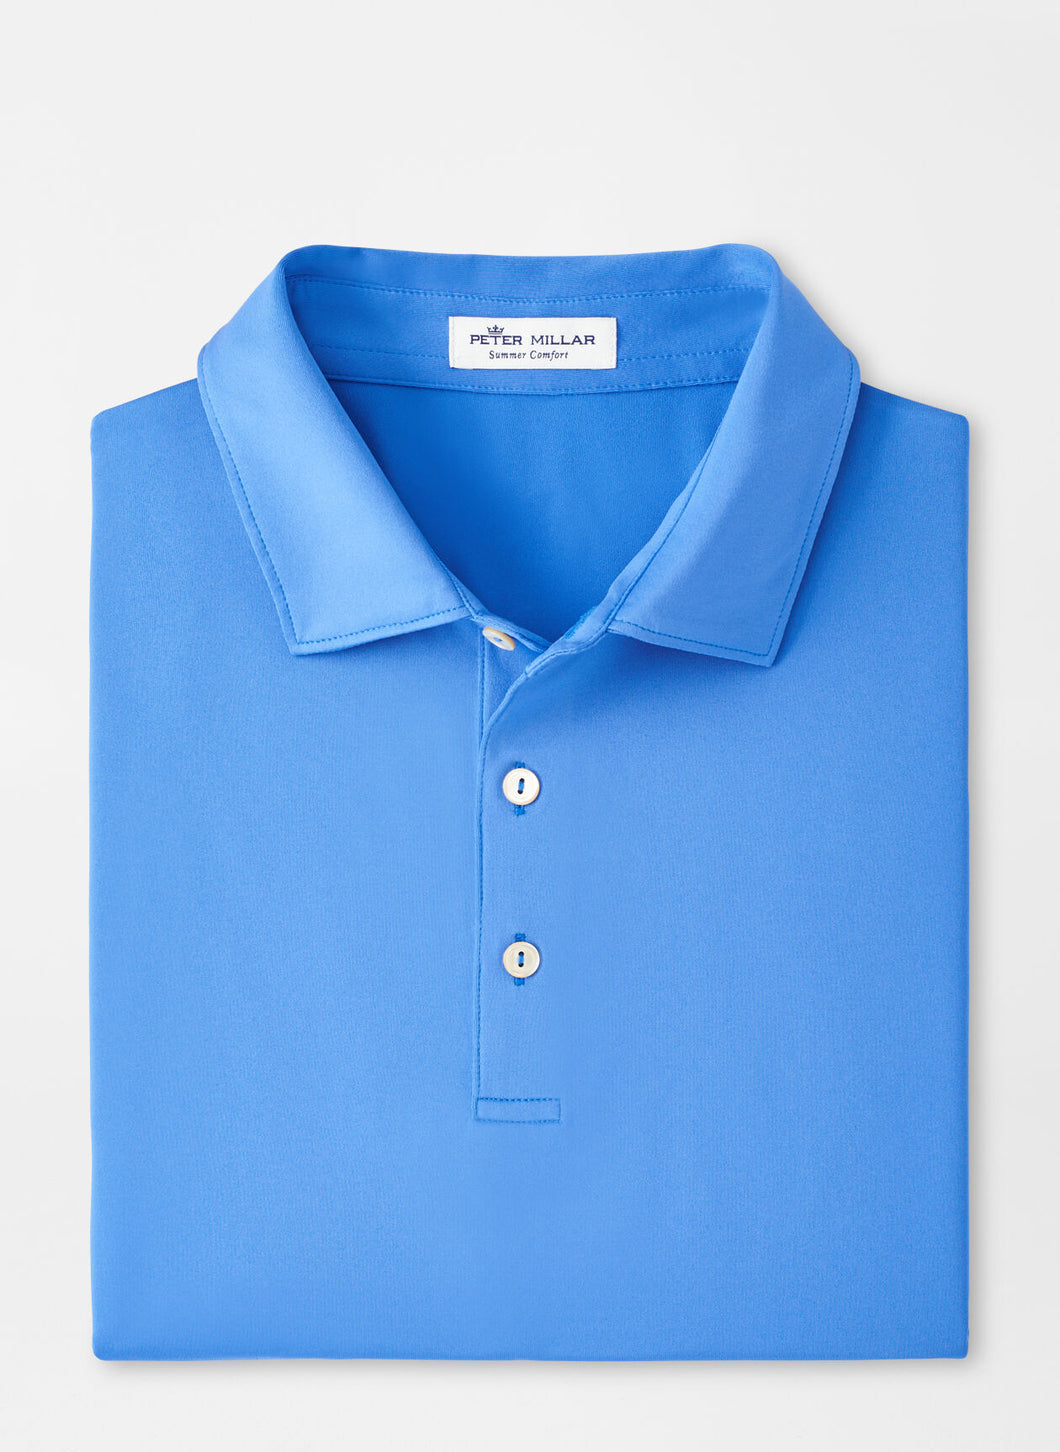 Peter Millar Solid Performance Polo in Blue River